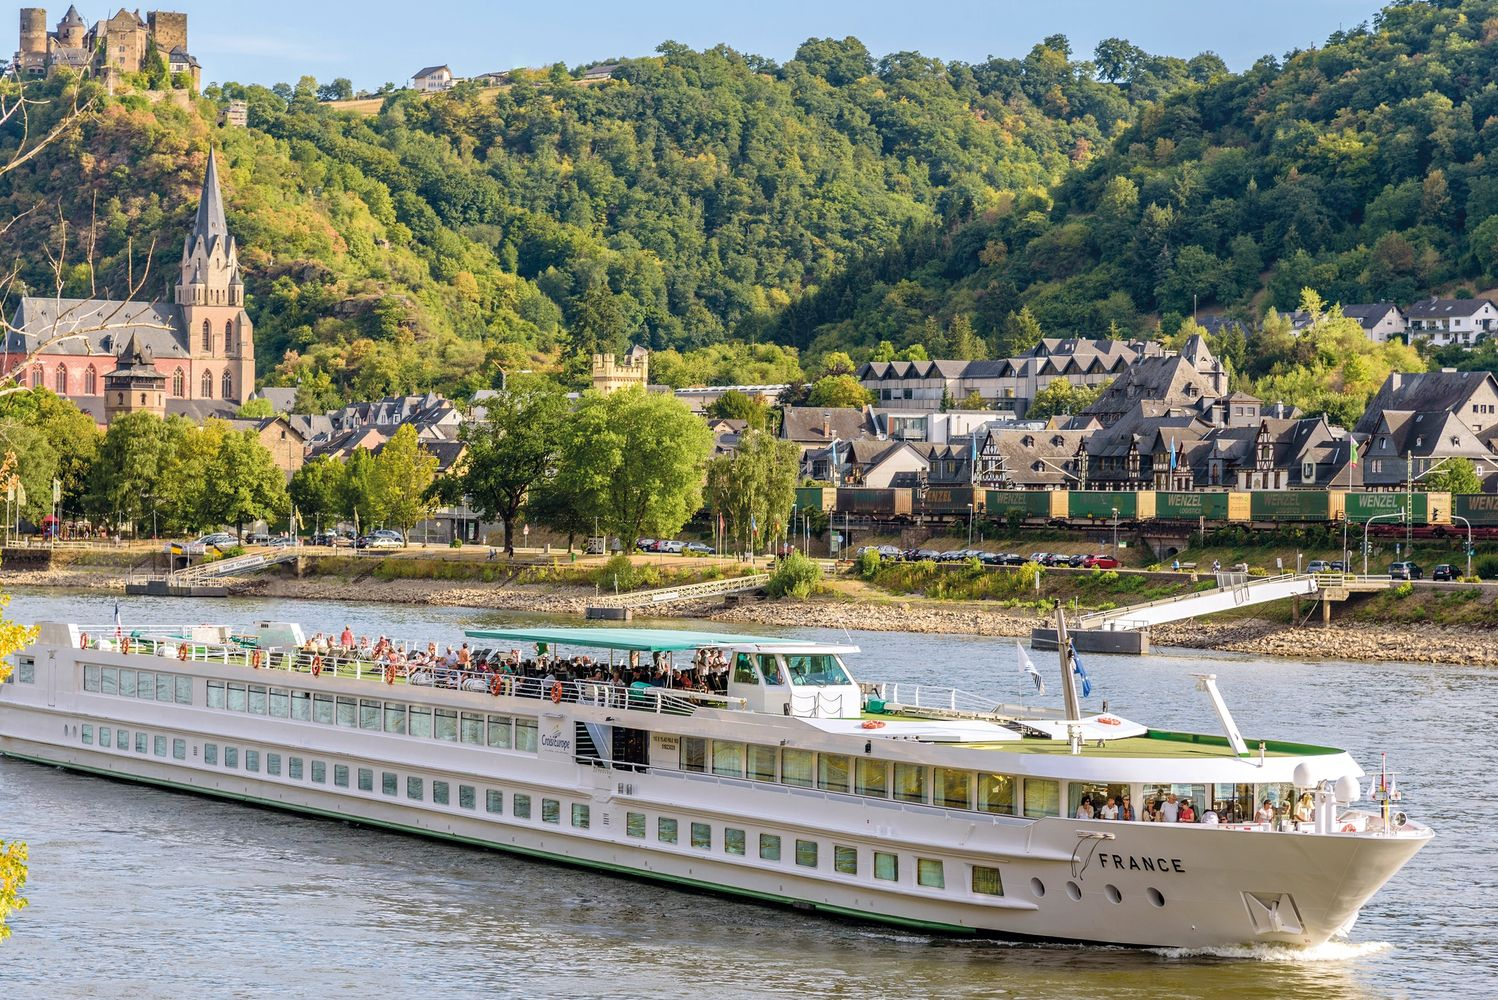 Rhine river cruising in Germany with Railandsailvacations.com